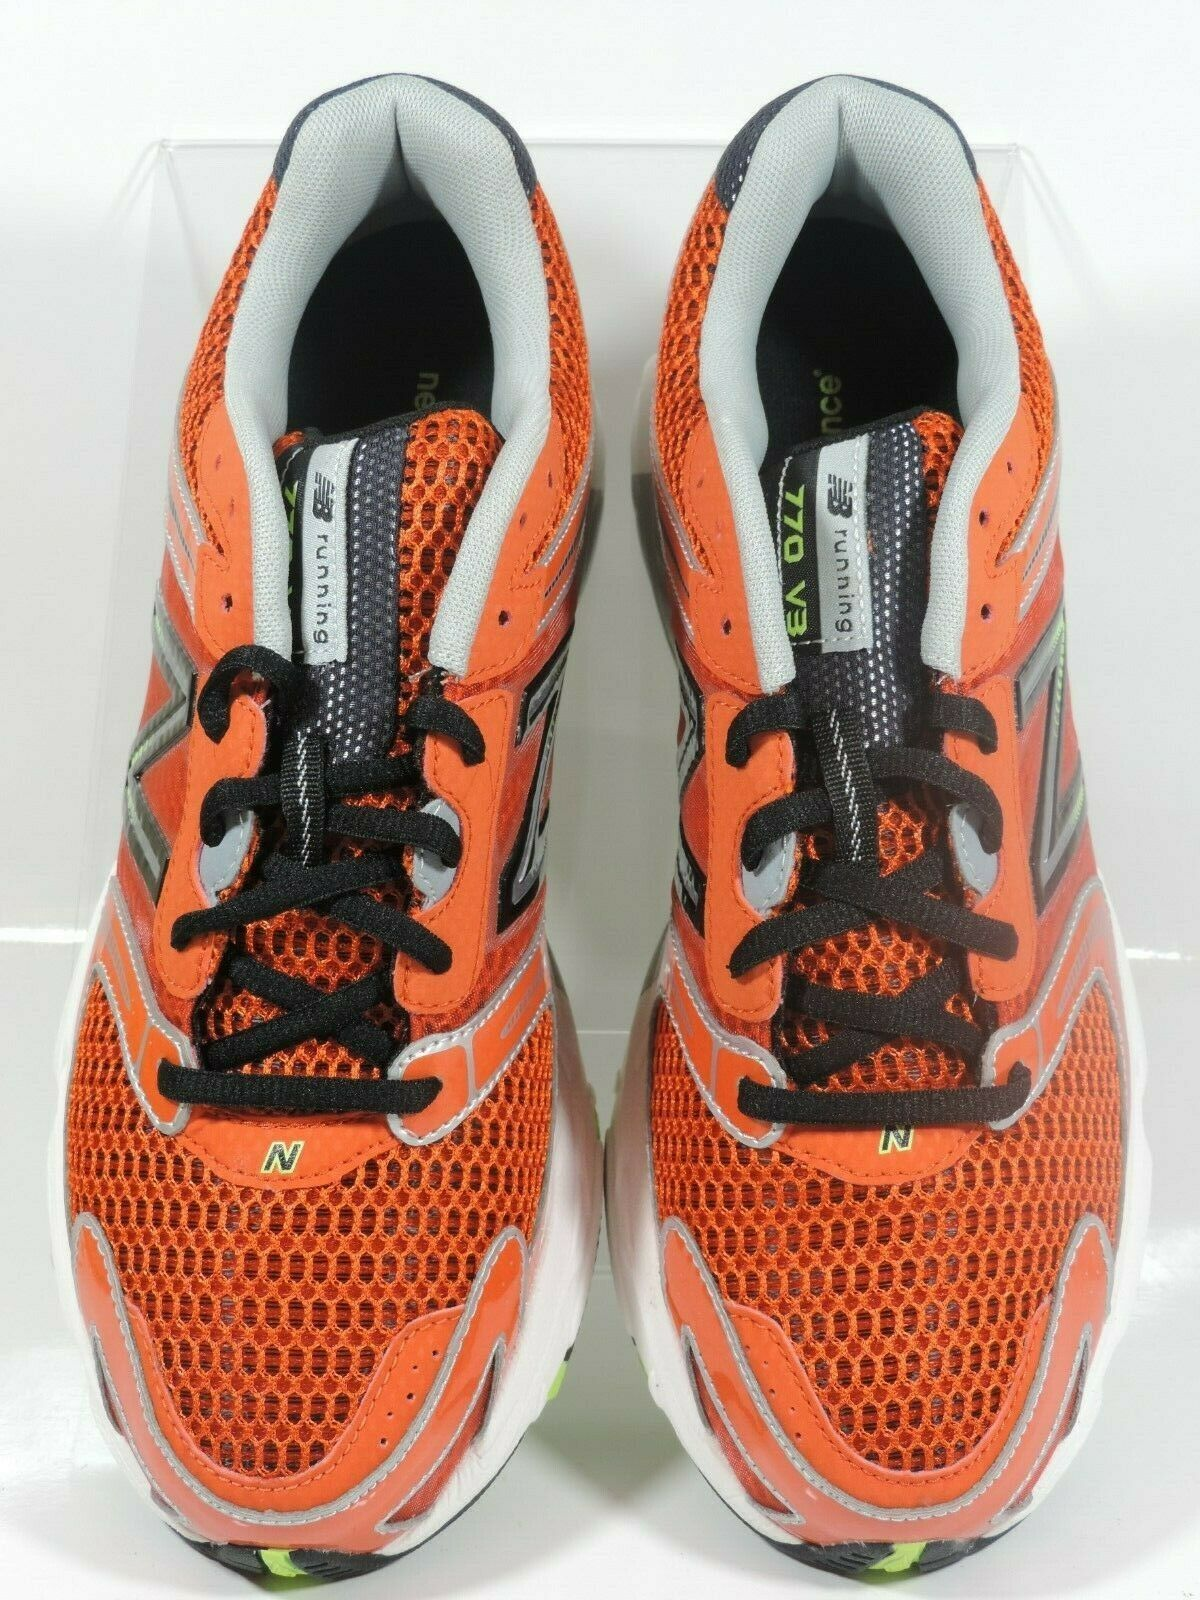 New Balance Men's Shoes M770CT3 Athletic Running Sneakers Red Black Mesh image 4